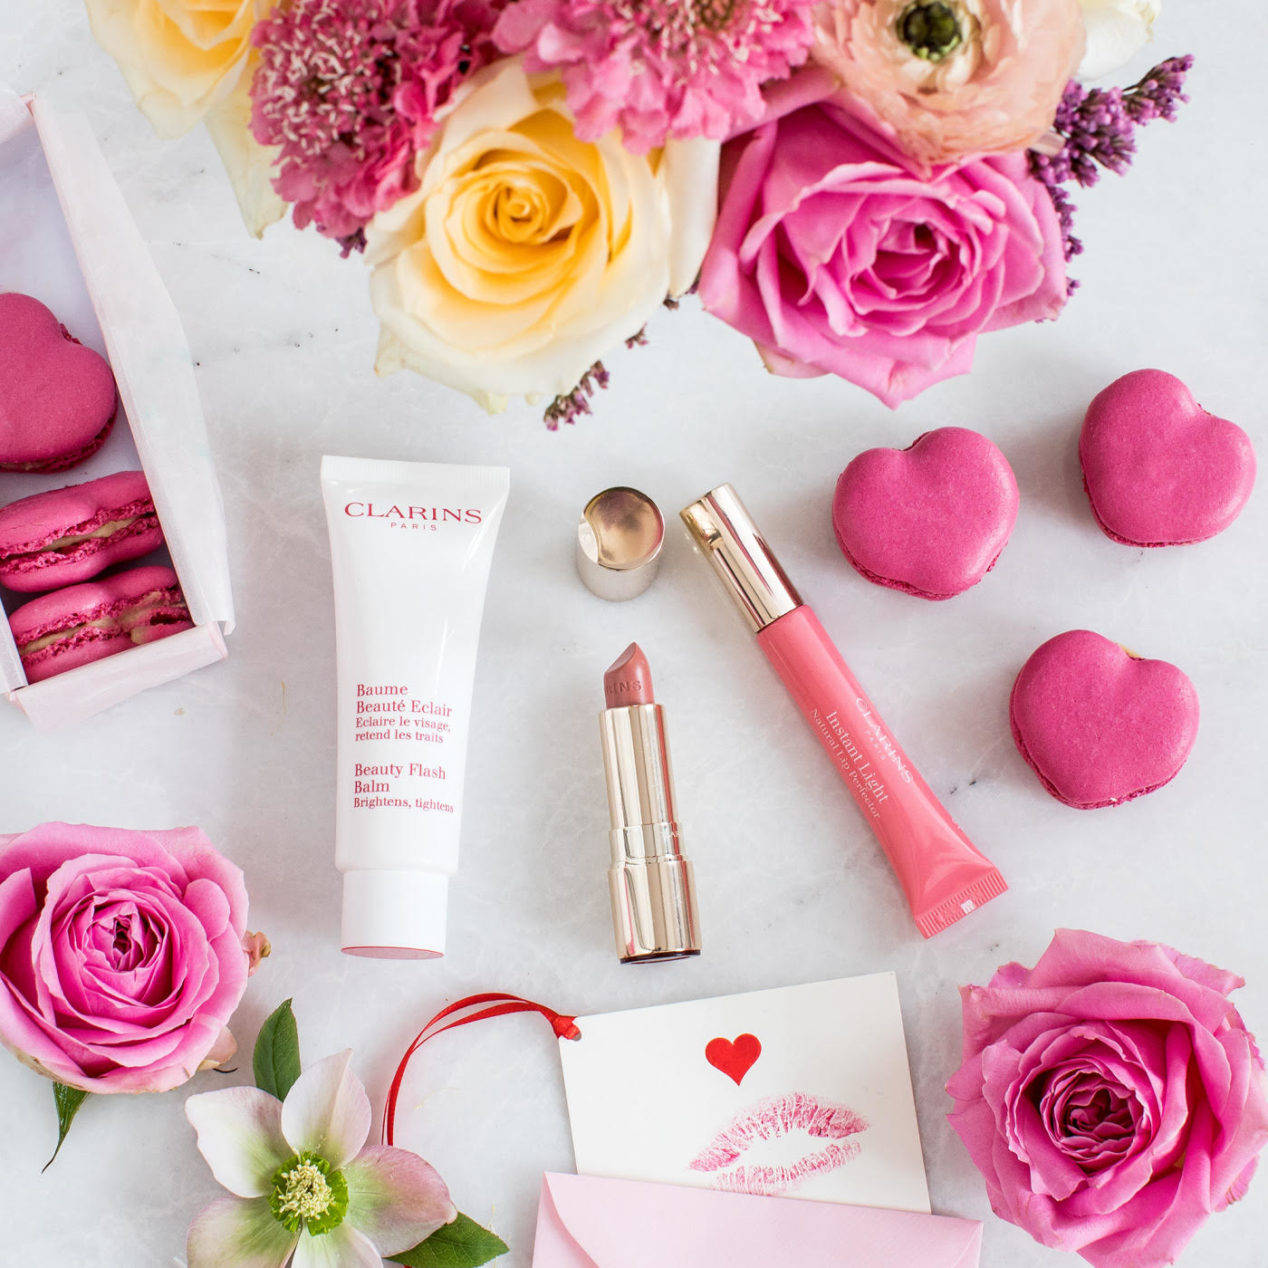 Clarins Instant Light and Beauty Flash Balm at Frontlinestyle